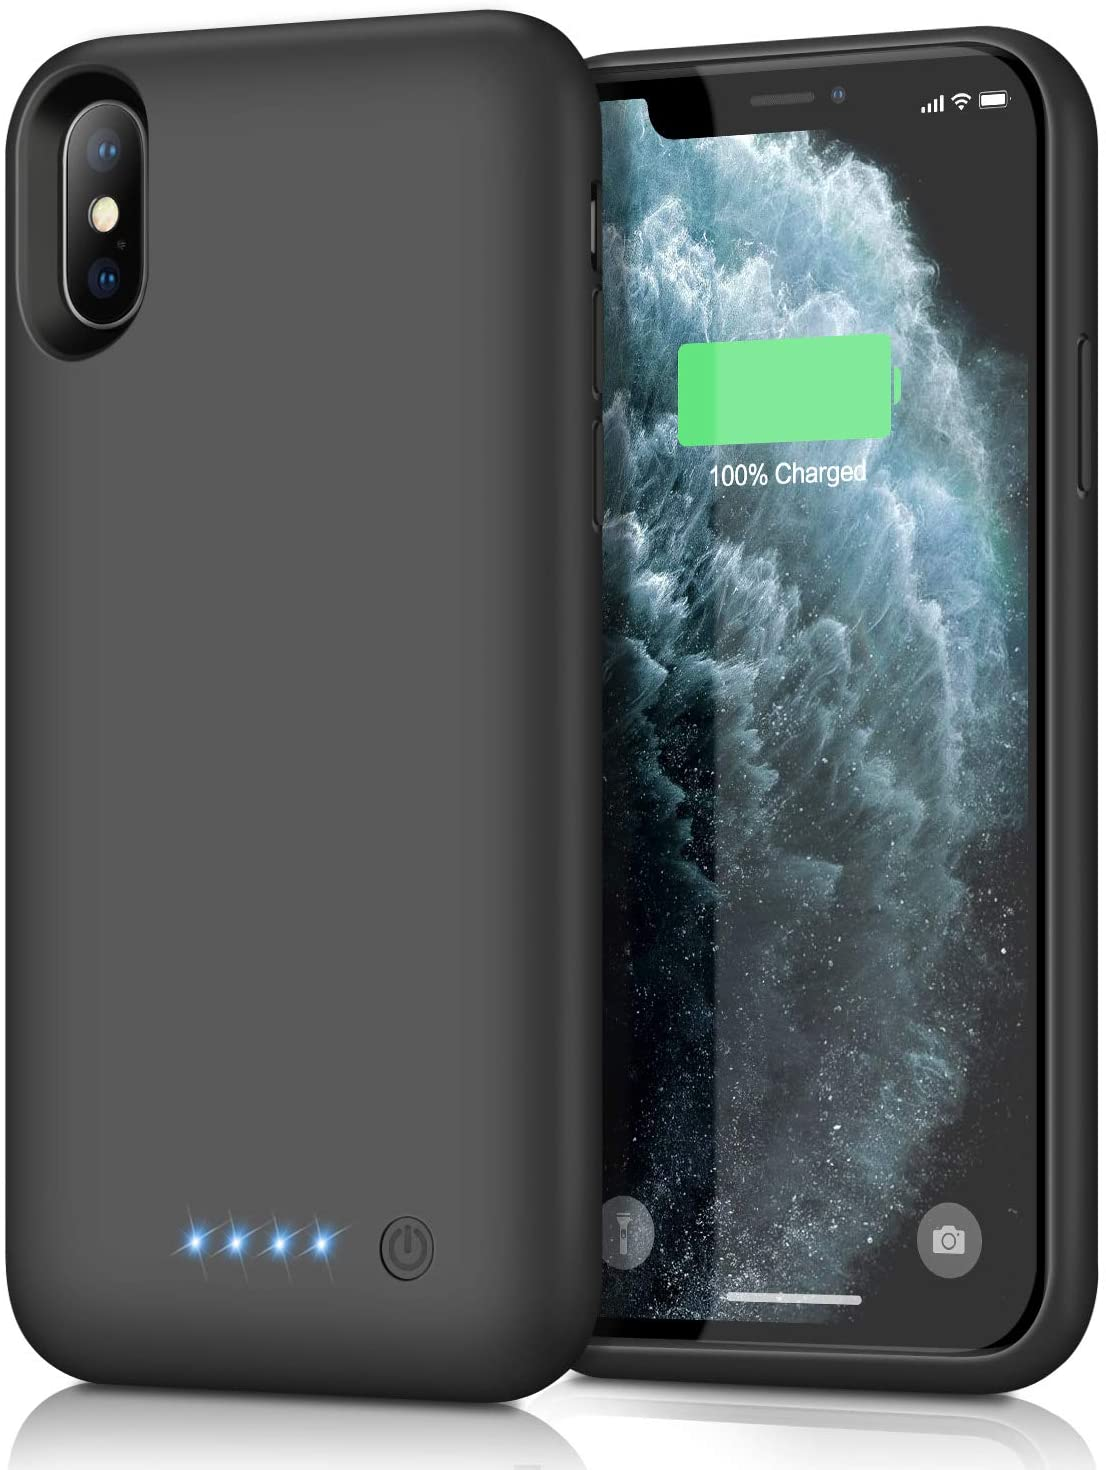 Feob Battery Case for iPhone Xs max, Upgraded7800mAh Portable Charging Case Extended Battery Pack for iPhone Xs Max [6.5 inch] Protective Charger Case - Black